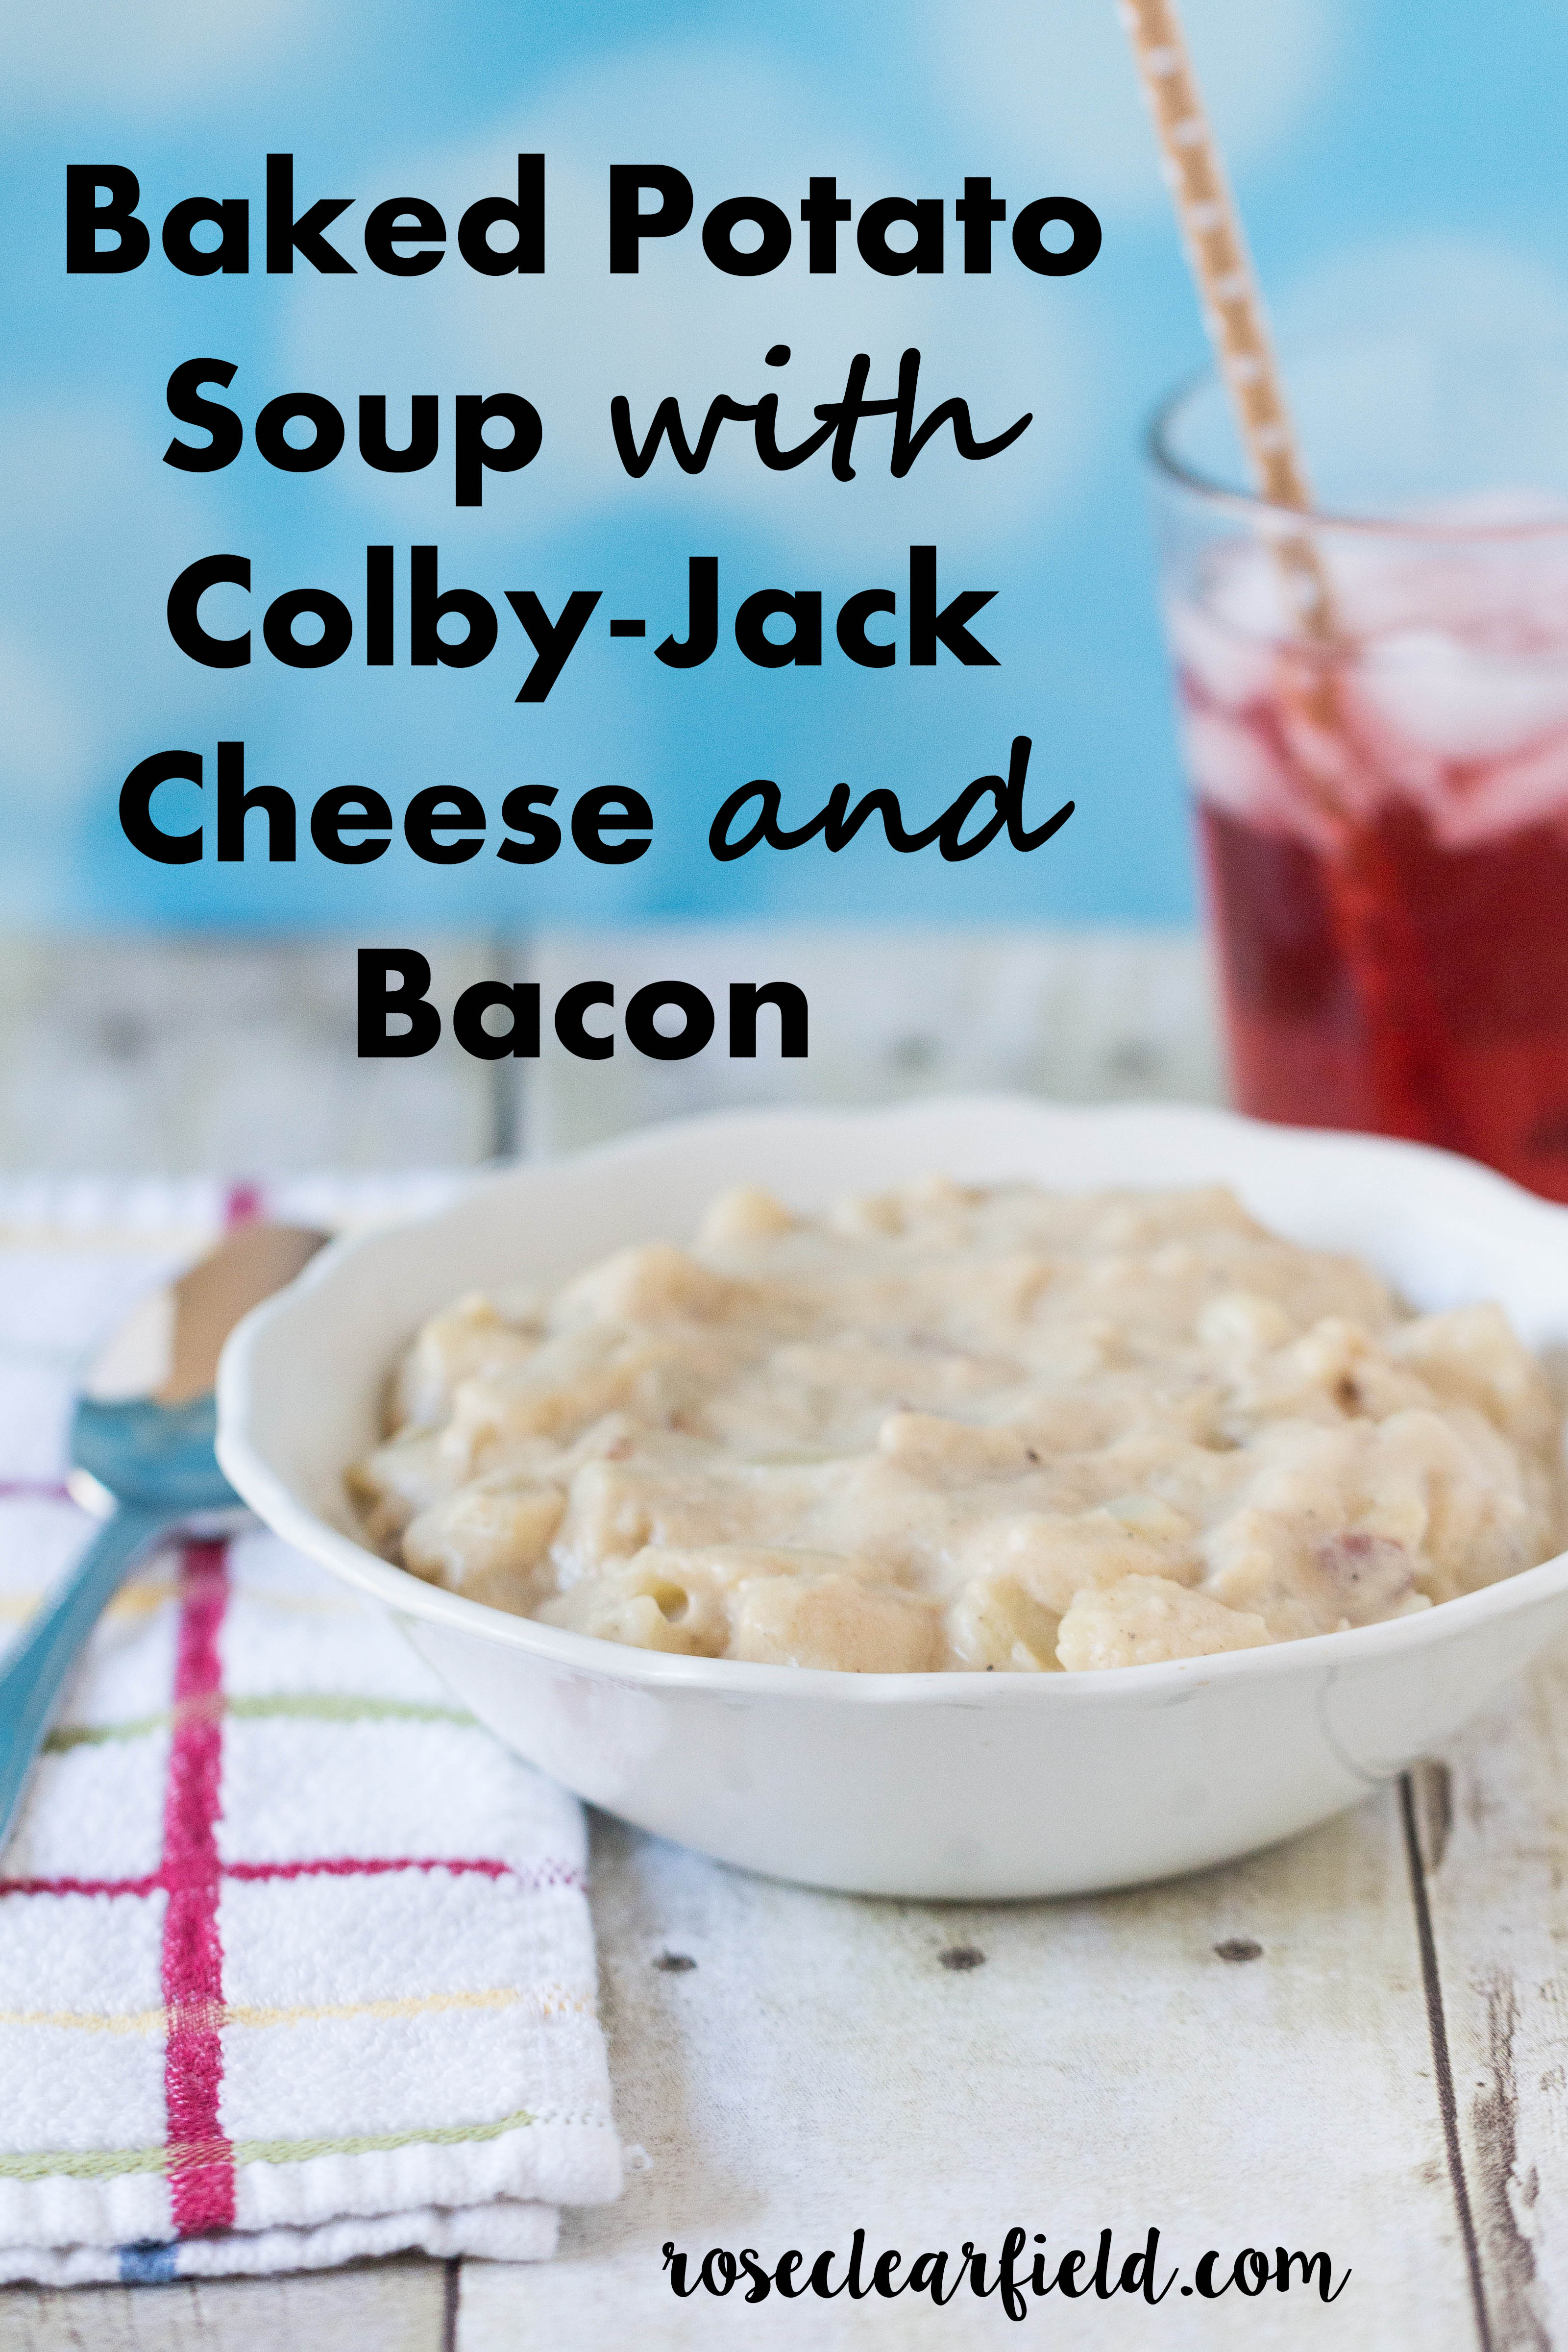 Baked Potato Soup with Colby-Jack Cheese and Bacon | https://www.roseclearfield.com